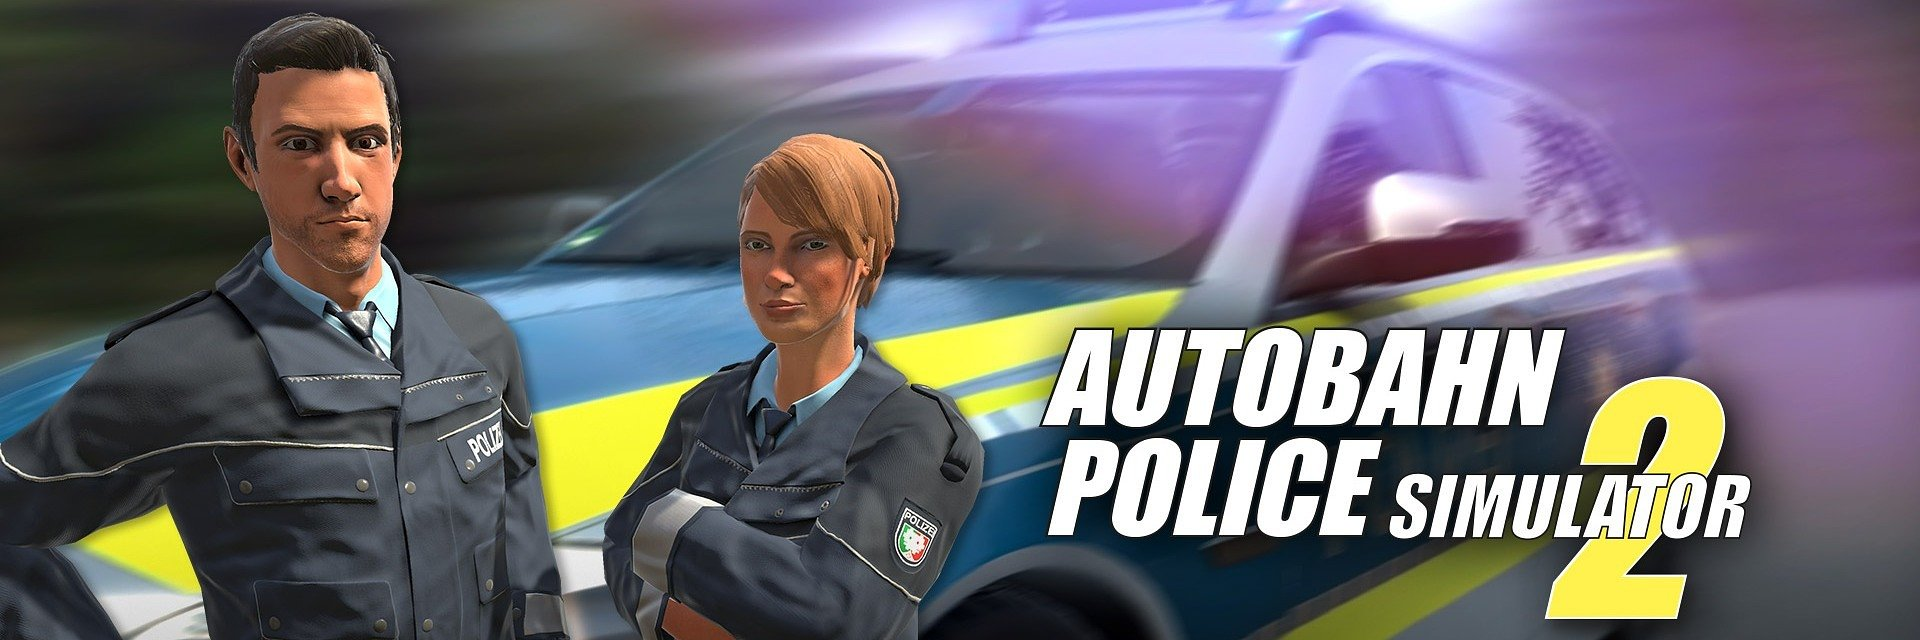 Autobahn Police Simulator 2 available today for Xbox One